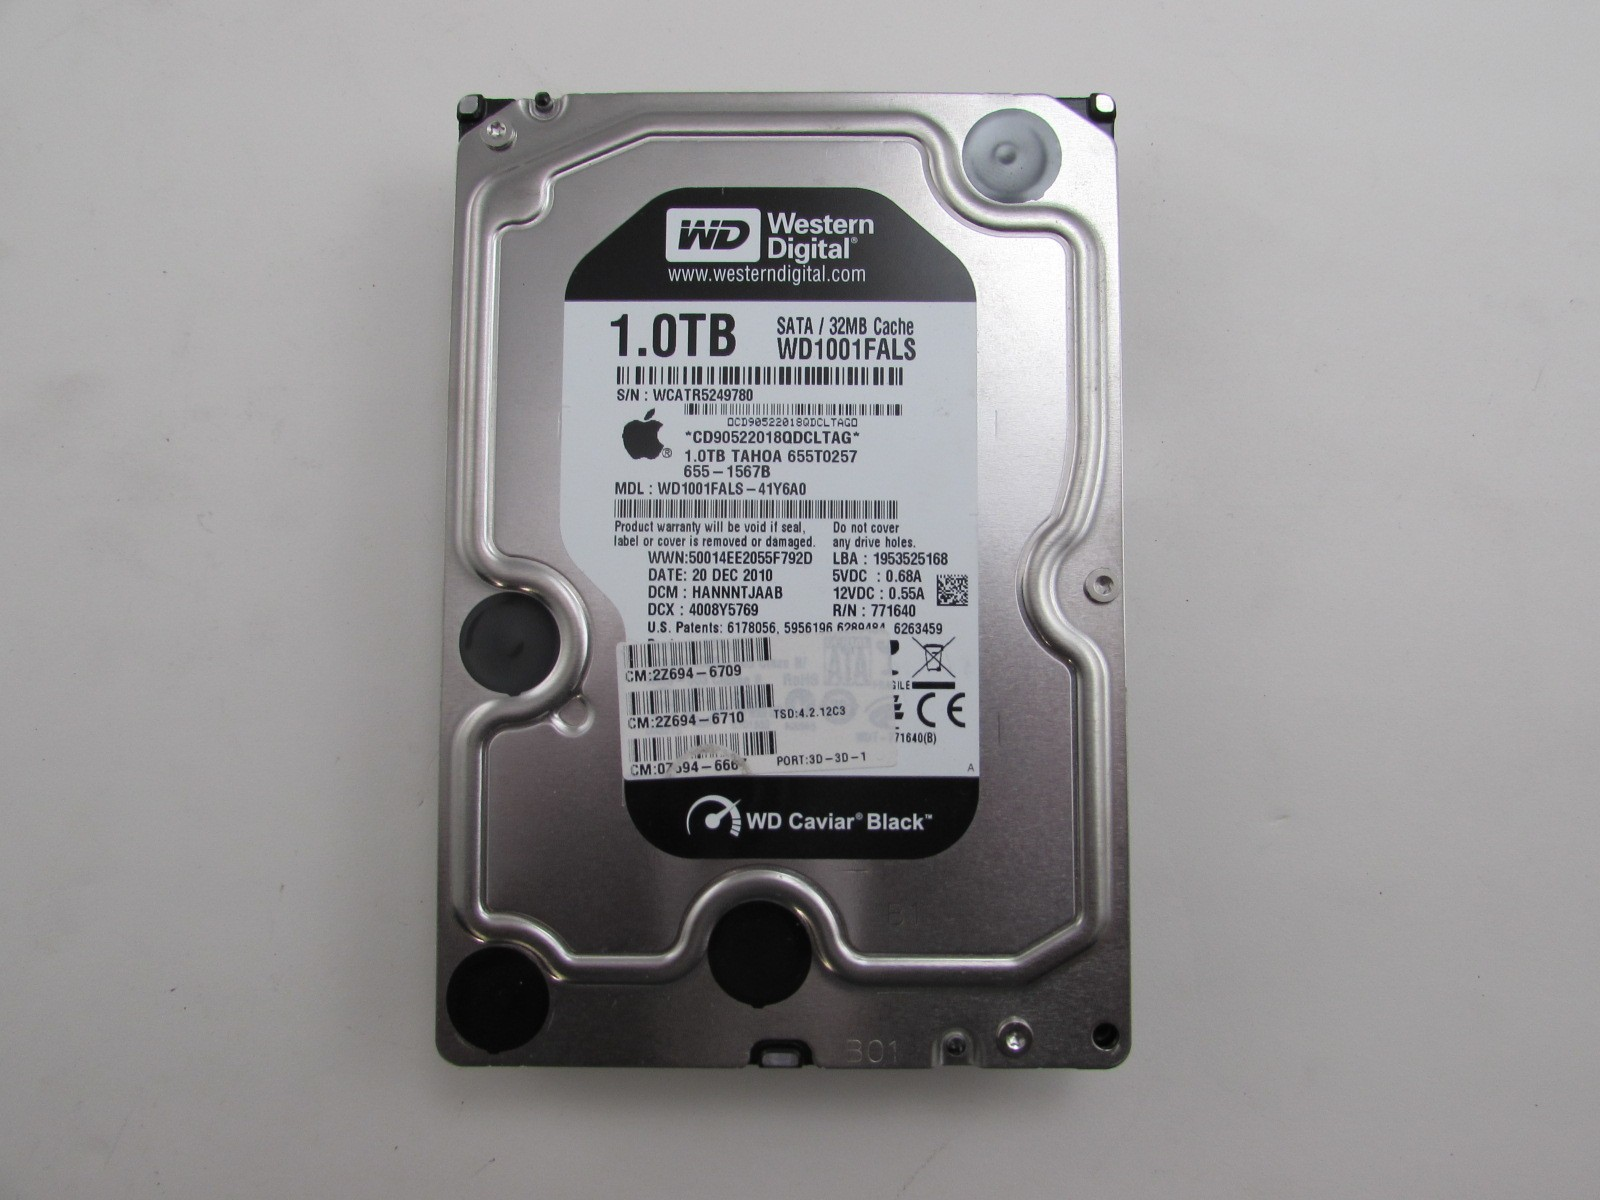 "Apple WD Caviar Black 3.5/"" 1TB SATA 3 HDD 32MB Cache 655-1567A WD1001FALS"